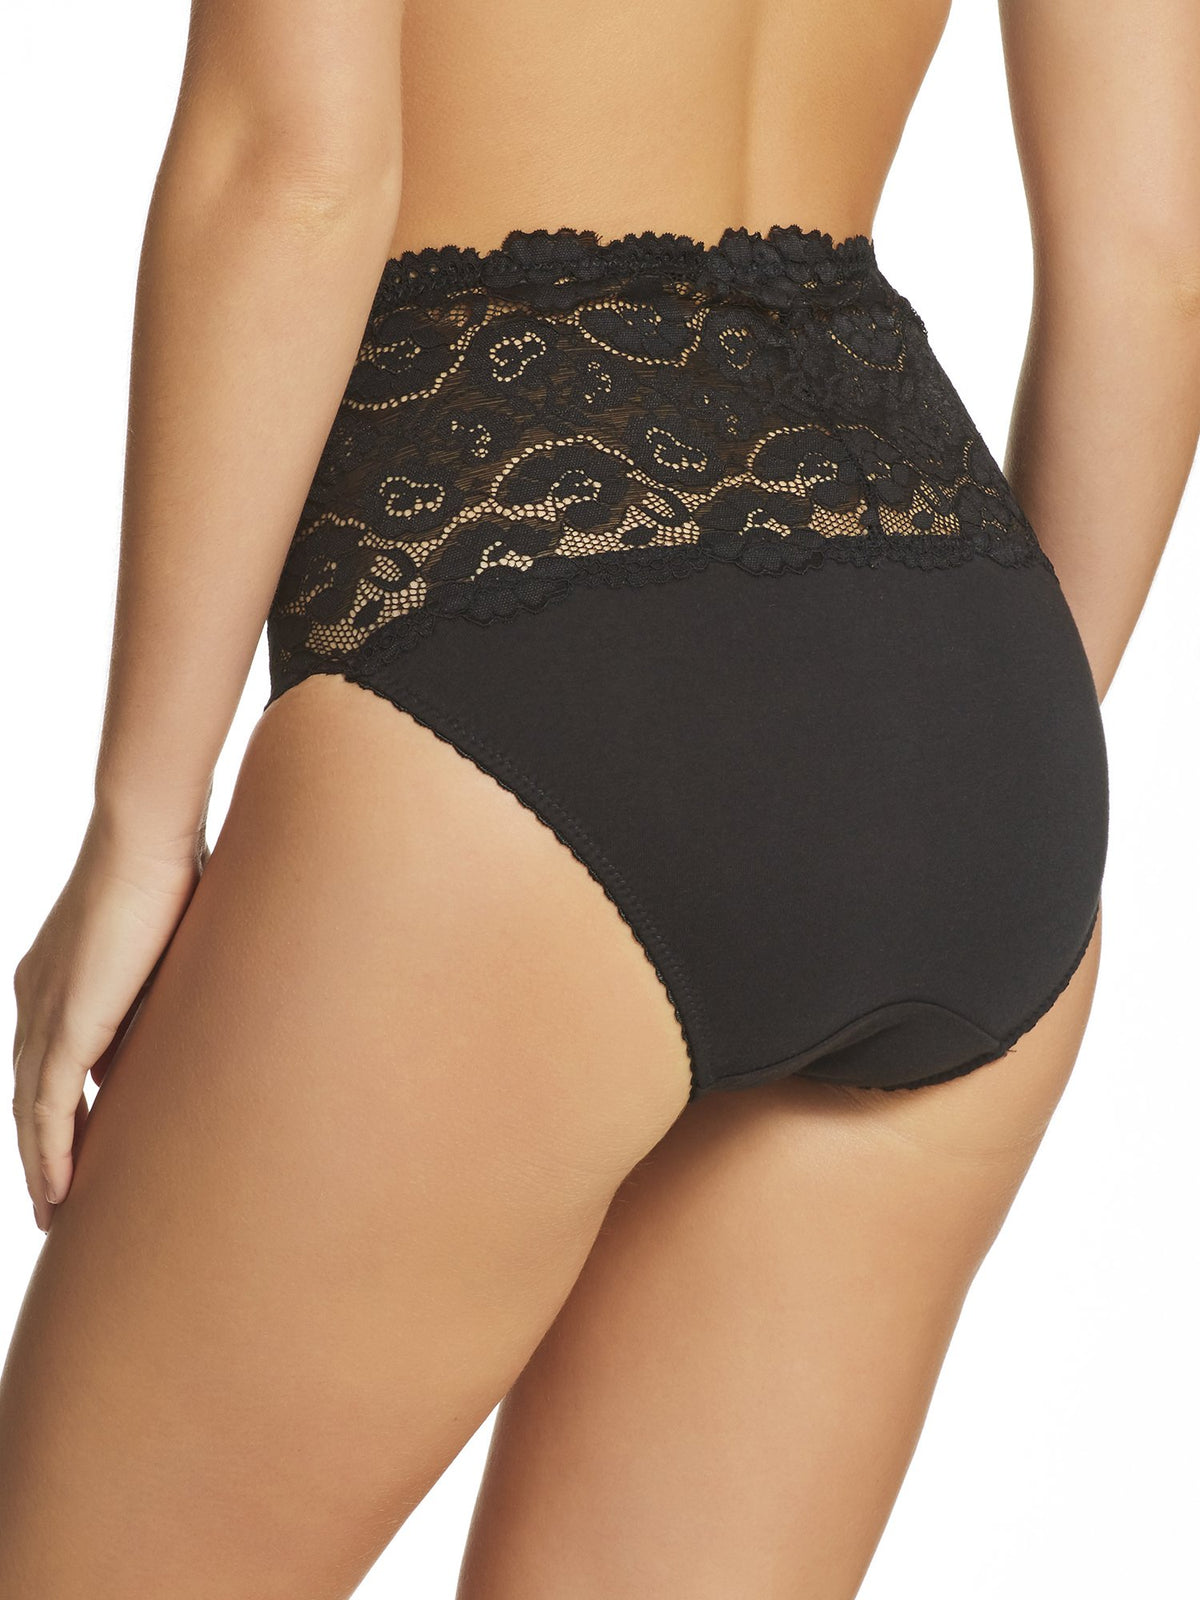 Daily Essentials Cotton & Lace Full Brief (465)